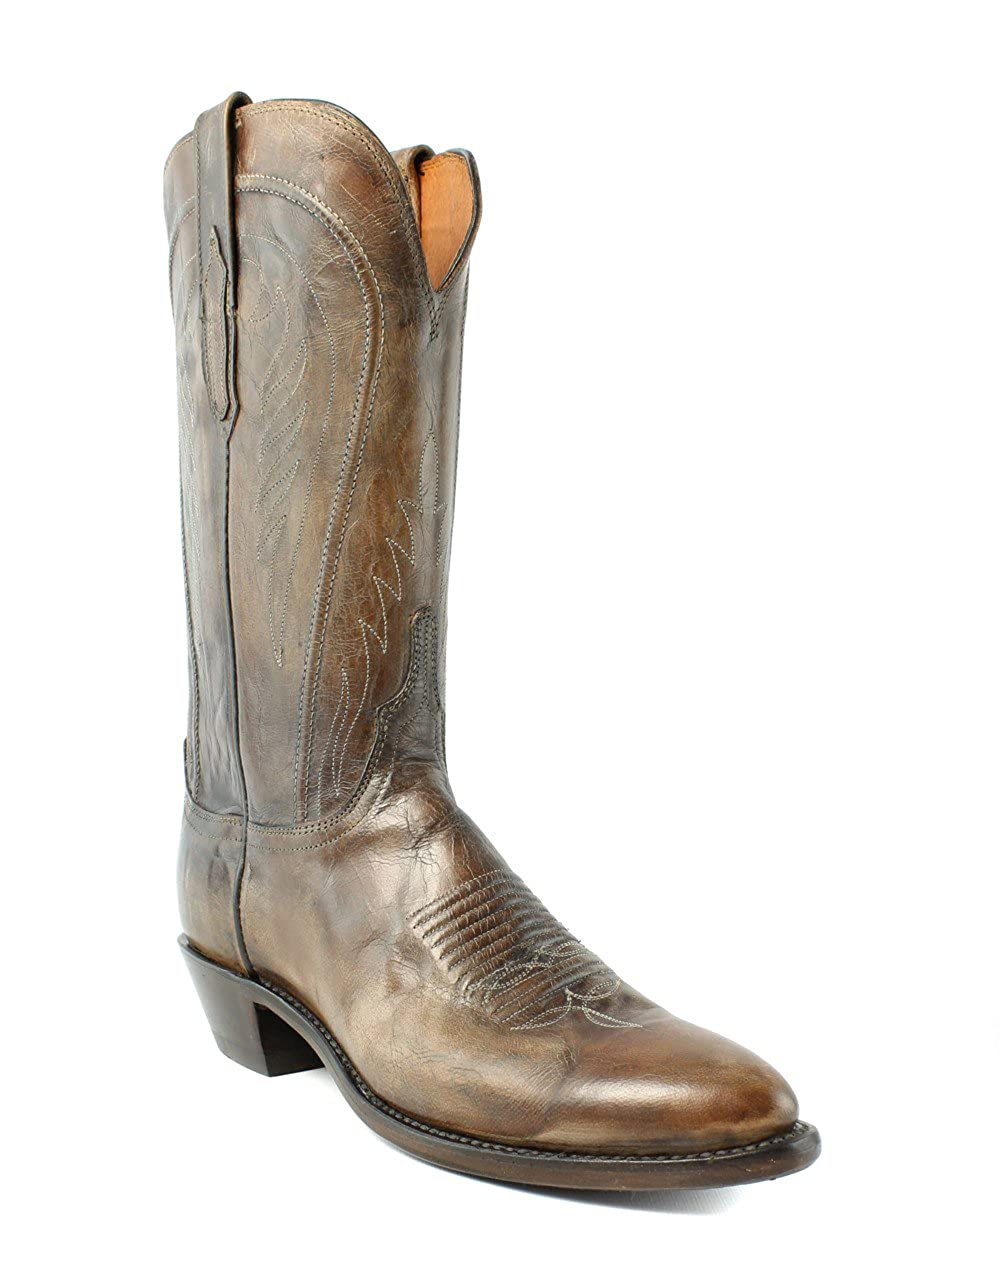 3a93ee72094 Amazon.com | Lucchese N4770.R4 Womens Antique Pearl Bone Distrsd ...